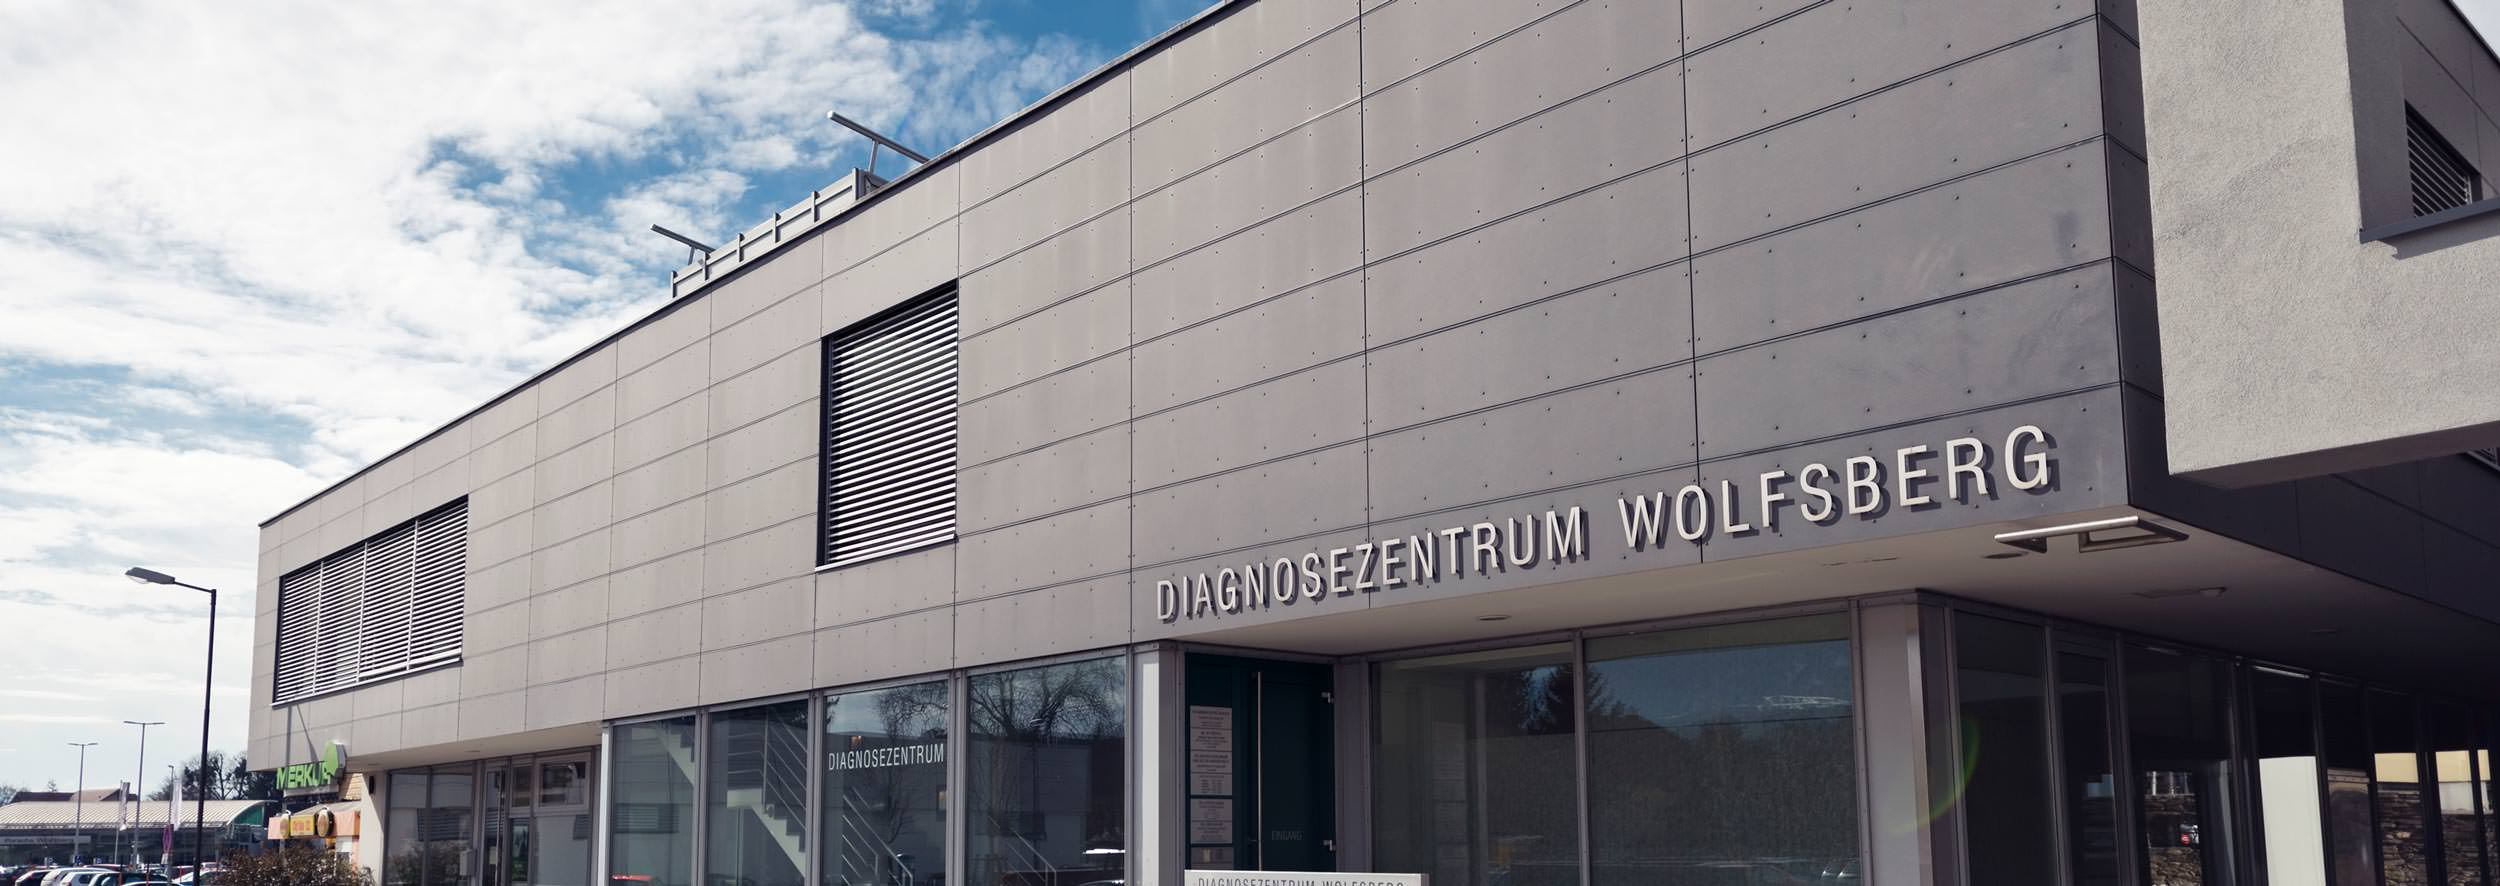 Diagnosezentrum Wolfsberg